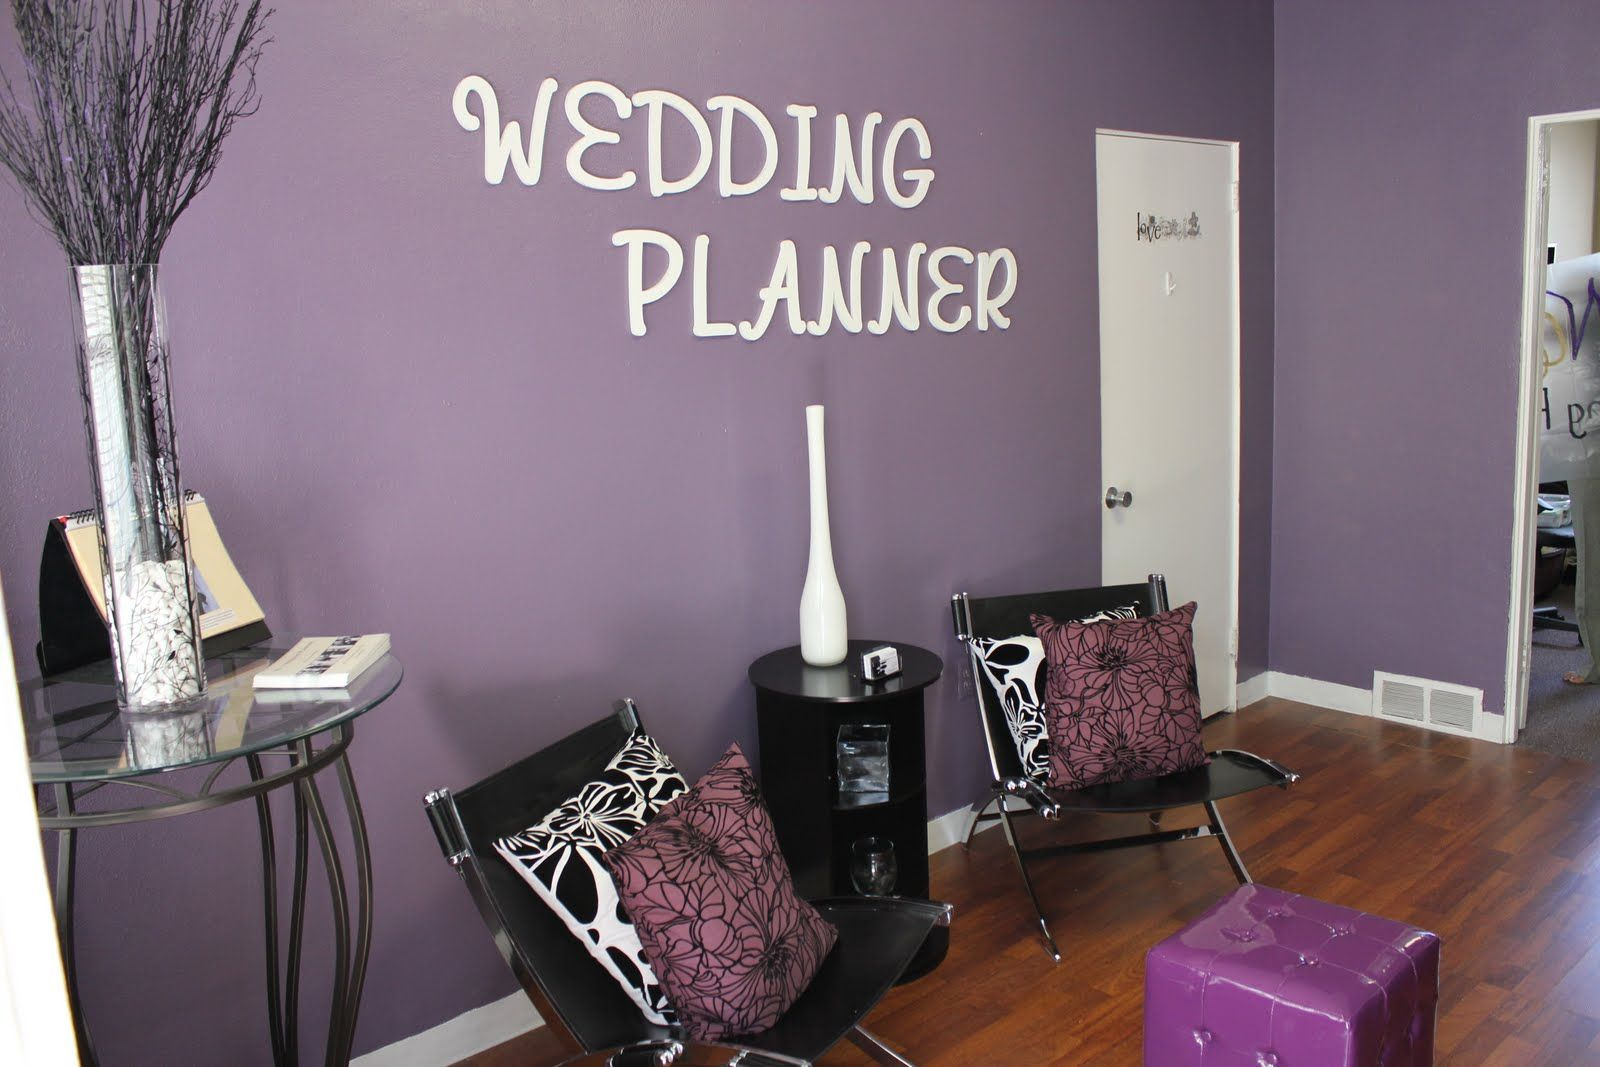 Like The Color Of Wall And Wedding Planner Letters For My Office